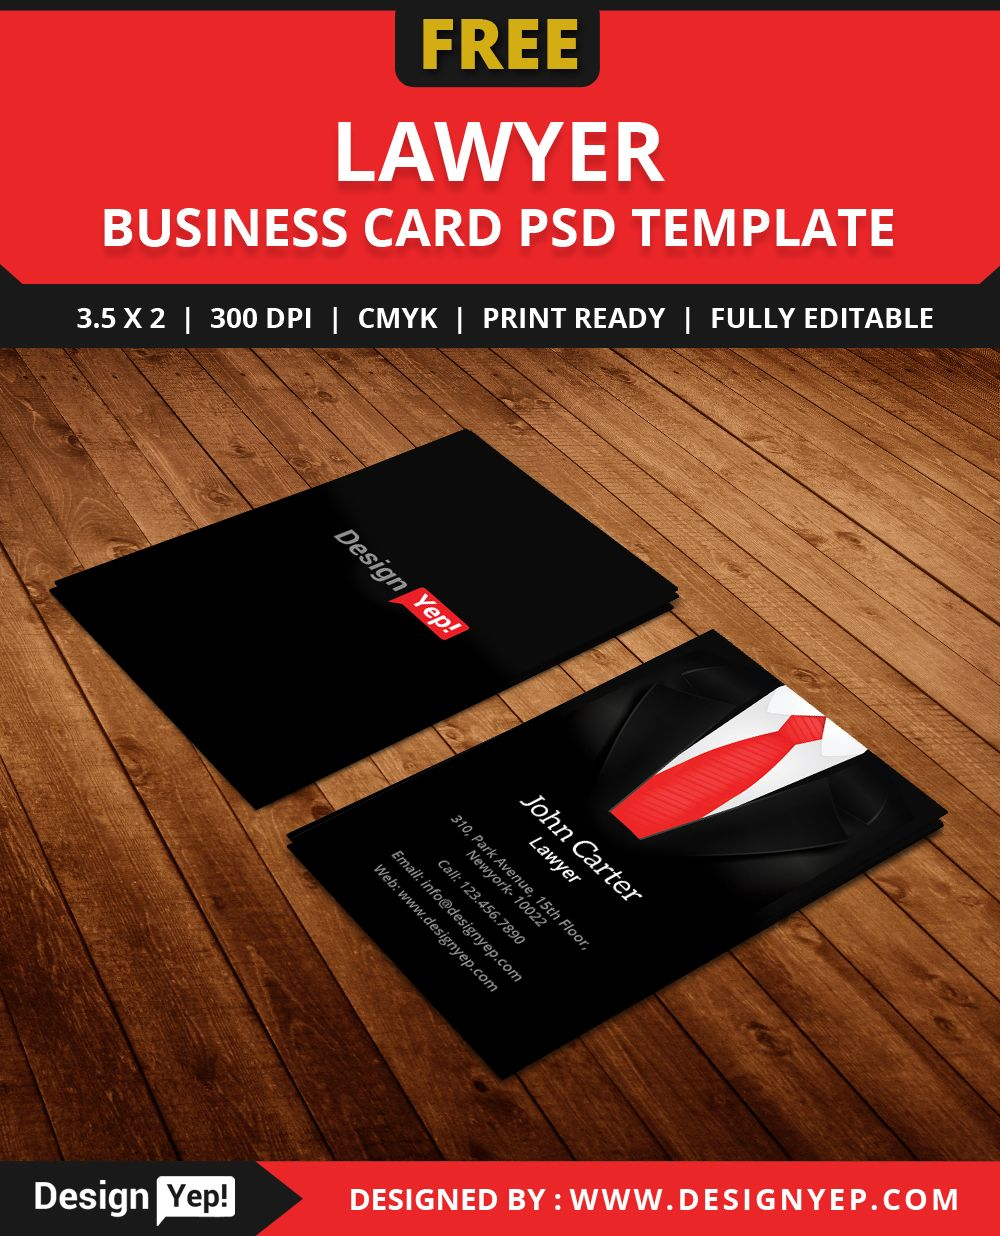 Free lawyer business card template psd free business card free lawyer business card template psd flashek Images